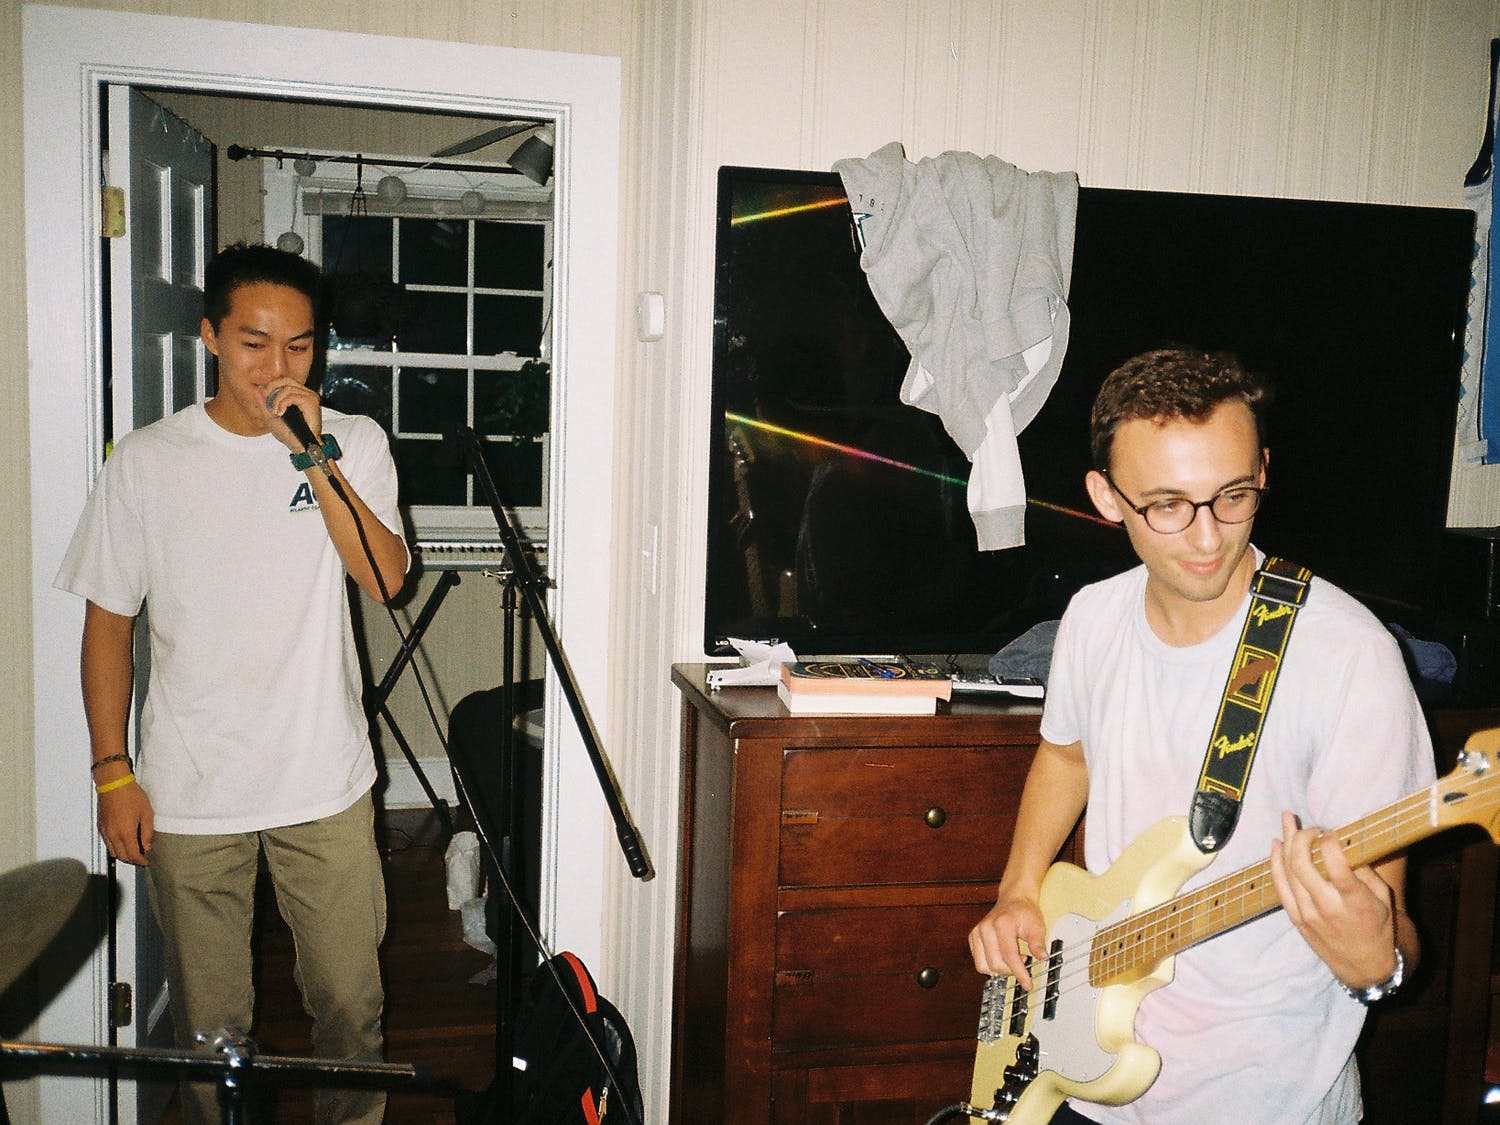 Bryan Truong and Conner Mann practicing in their North Street house. Truong and Mann are a part of the 5 member Northbounds, a local band that frequents Chapel Hill bars, rooftops, tailgates and more. Photo courtesy of Bryan Truong.